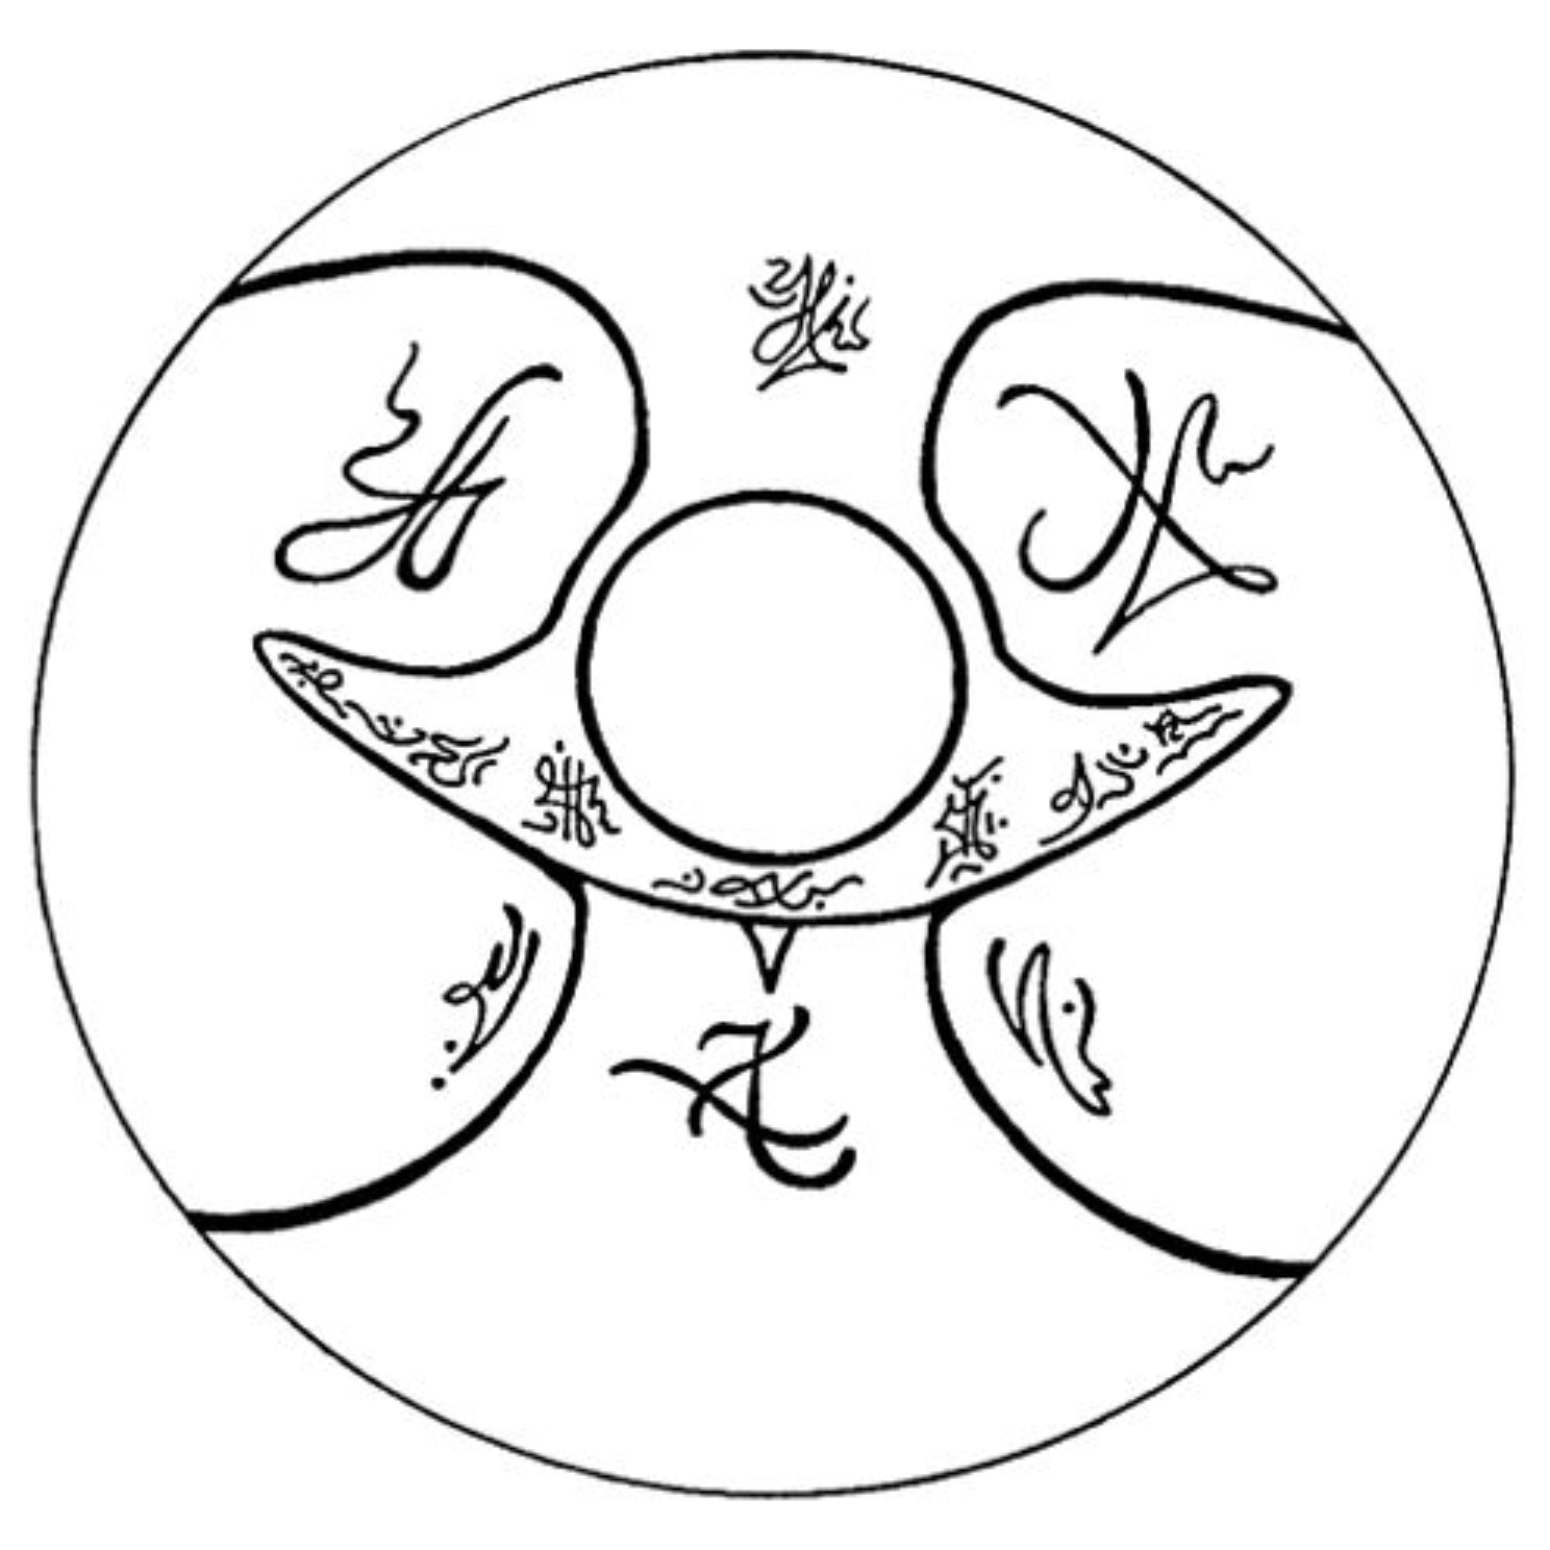 Alcuin and Flutterby: Extraterrestrial symbols of